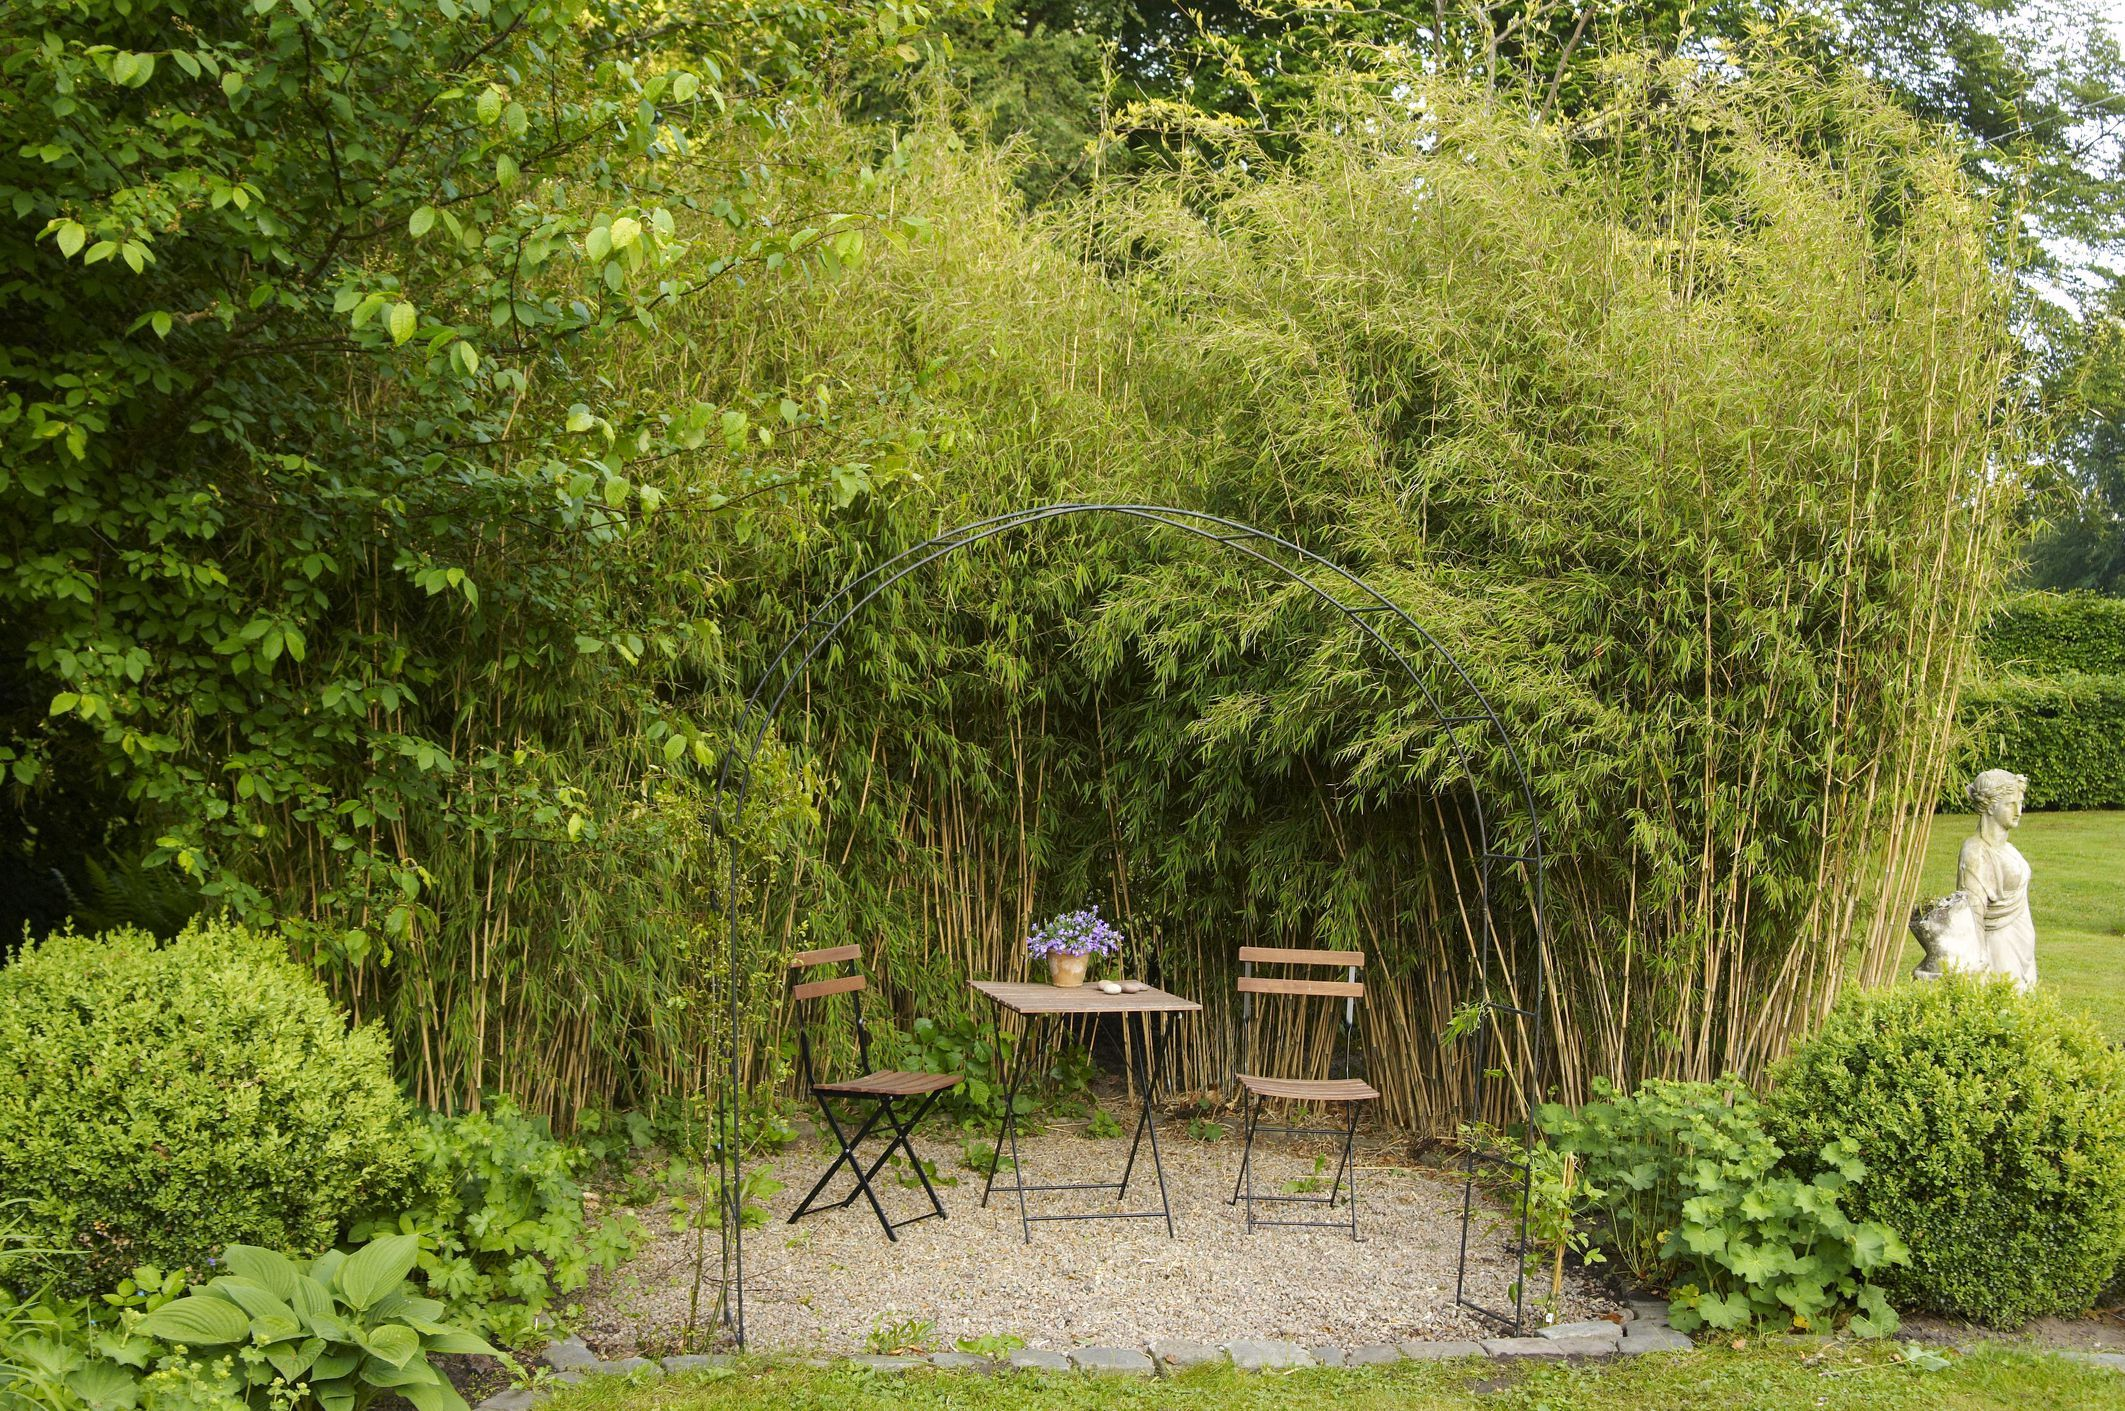 8 Best Ornamental Grasses to Add Privacy to the Garden ...